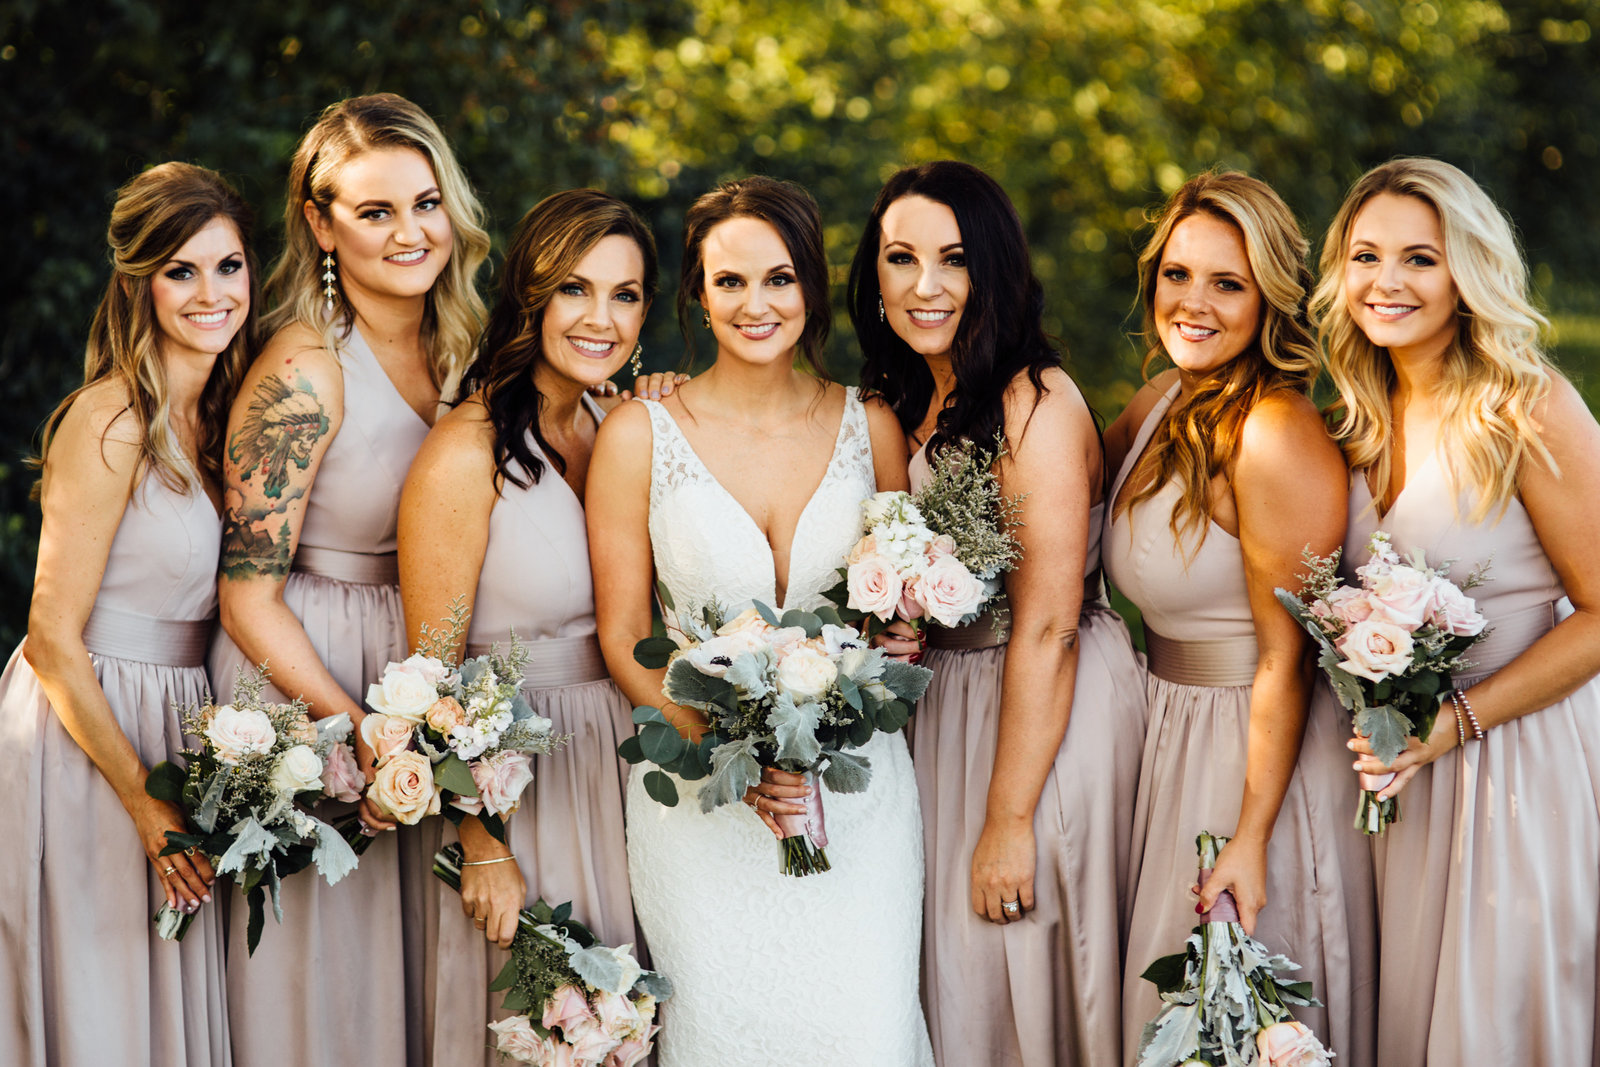 SaraLane-And-Stevie-Wedding-Photography-Jen-Joe-Nashville-Tennessee-LR-111